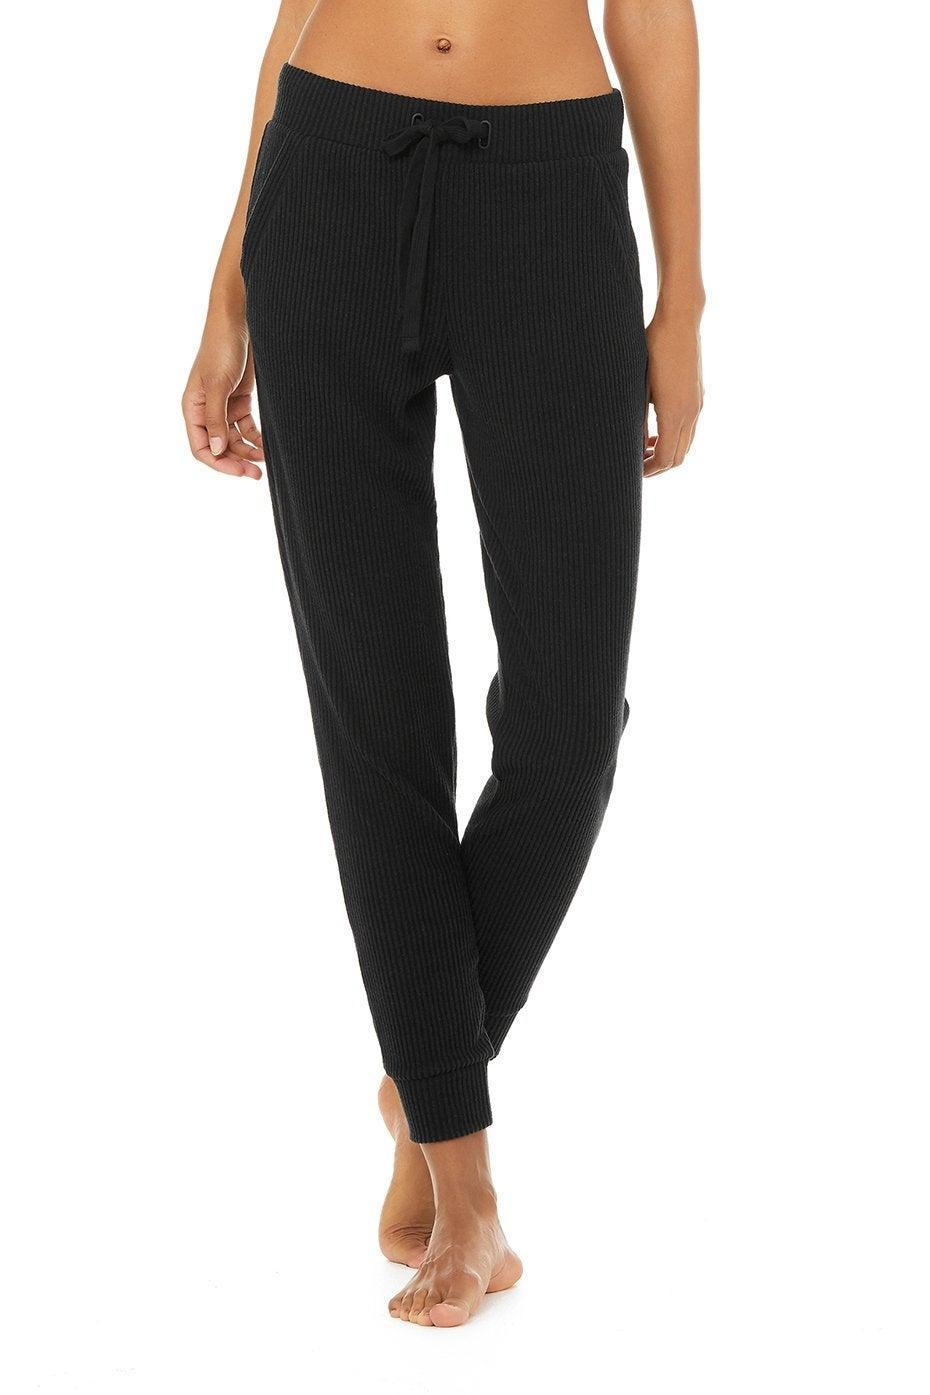 "<h3><a href=""https://www.aloyoga.com/products/w5784r-muse-sweatpant-black?"" rel=""nofollow noopener"" target=""_blank"" data-ylk=""slk:Muse Sweatpants"" class=""link rapid-noclick-resp"">Muse Sweatpants</a></h3><br><br><strong>Alo Yoga</strong> Muse Sweatpants, $, available at <a href=""https://go.skimresources.com/?id=30283X879131&url=https%3A%2F%2Fwww.aloyoga.com%2Fproducts%2Fw5784r-muse-sweatpant-black%3F"" rel=""nofollow noopener"" target=""_blank"" data-ylk=""slk:Alo Yoga"" class=""link rapid-noclick-resp"">Alo Yoga</a>"